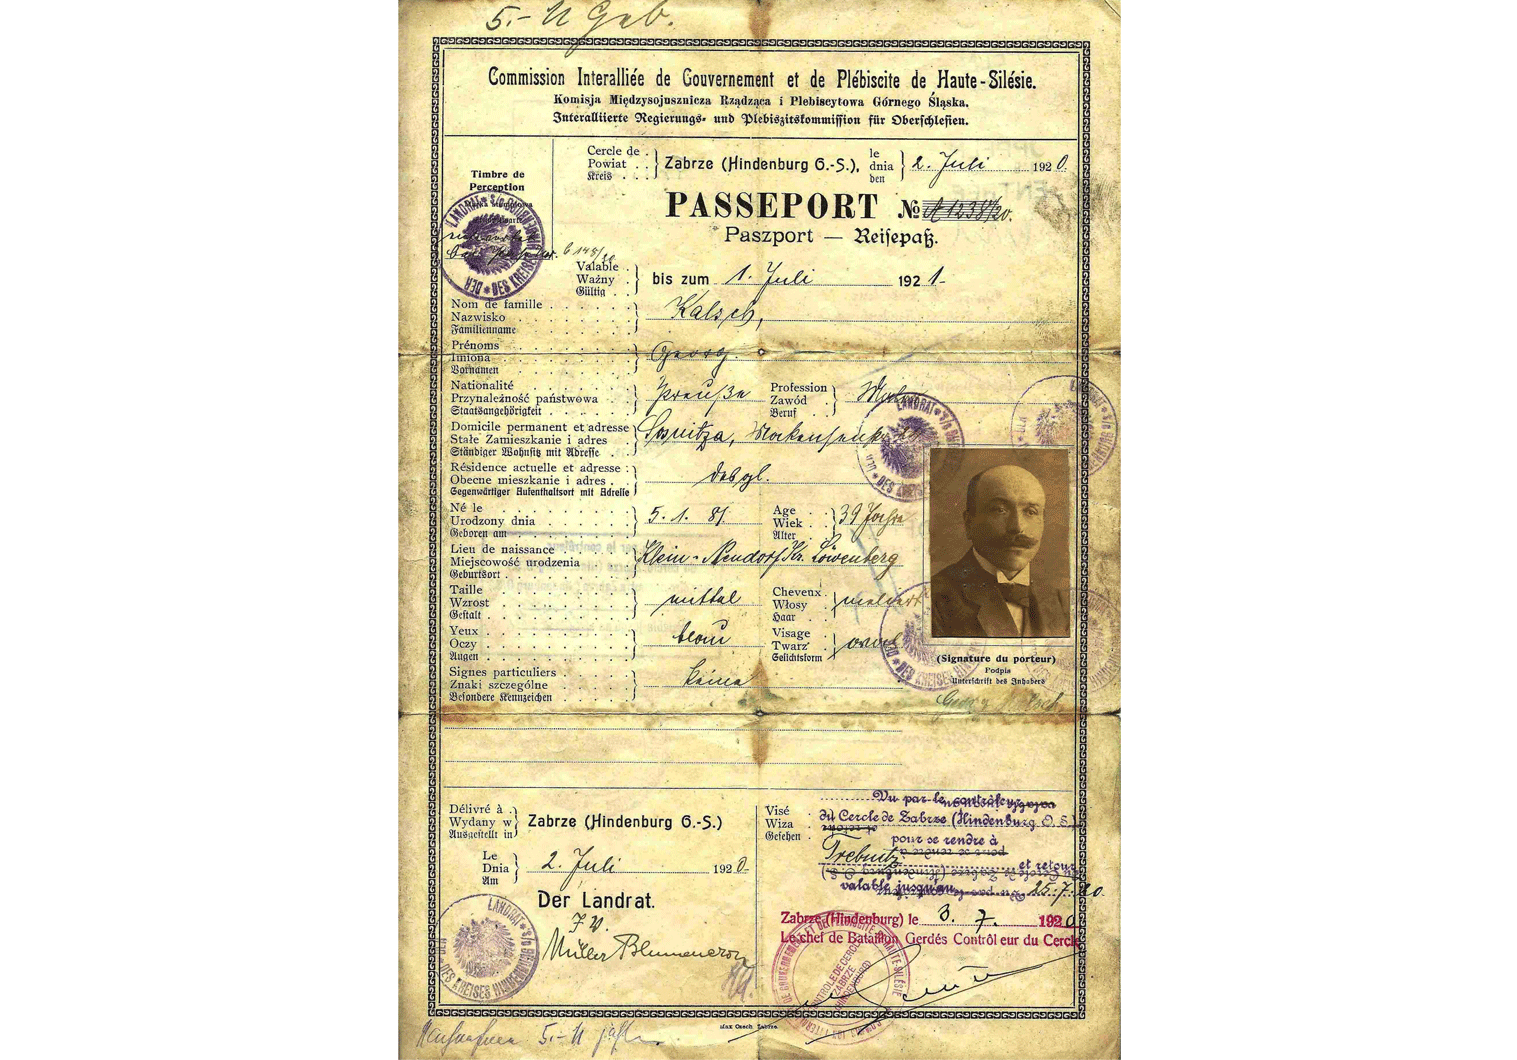 WWII Archives - Our Passports